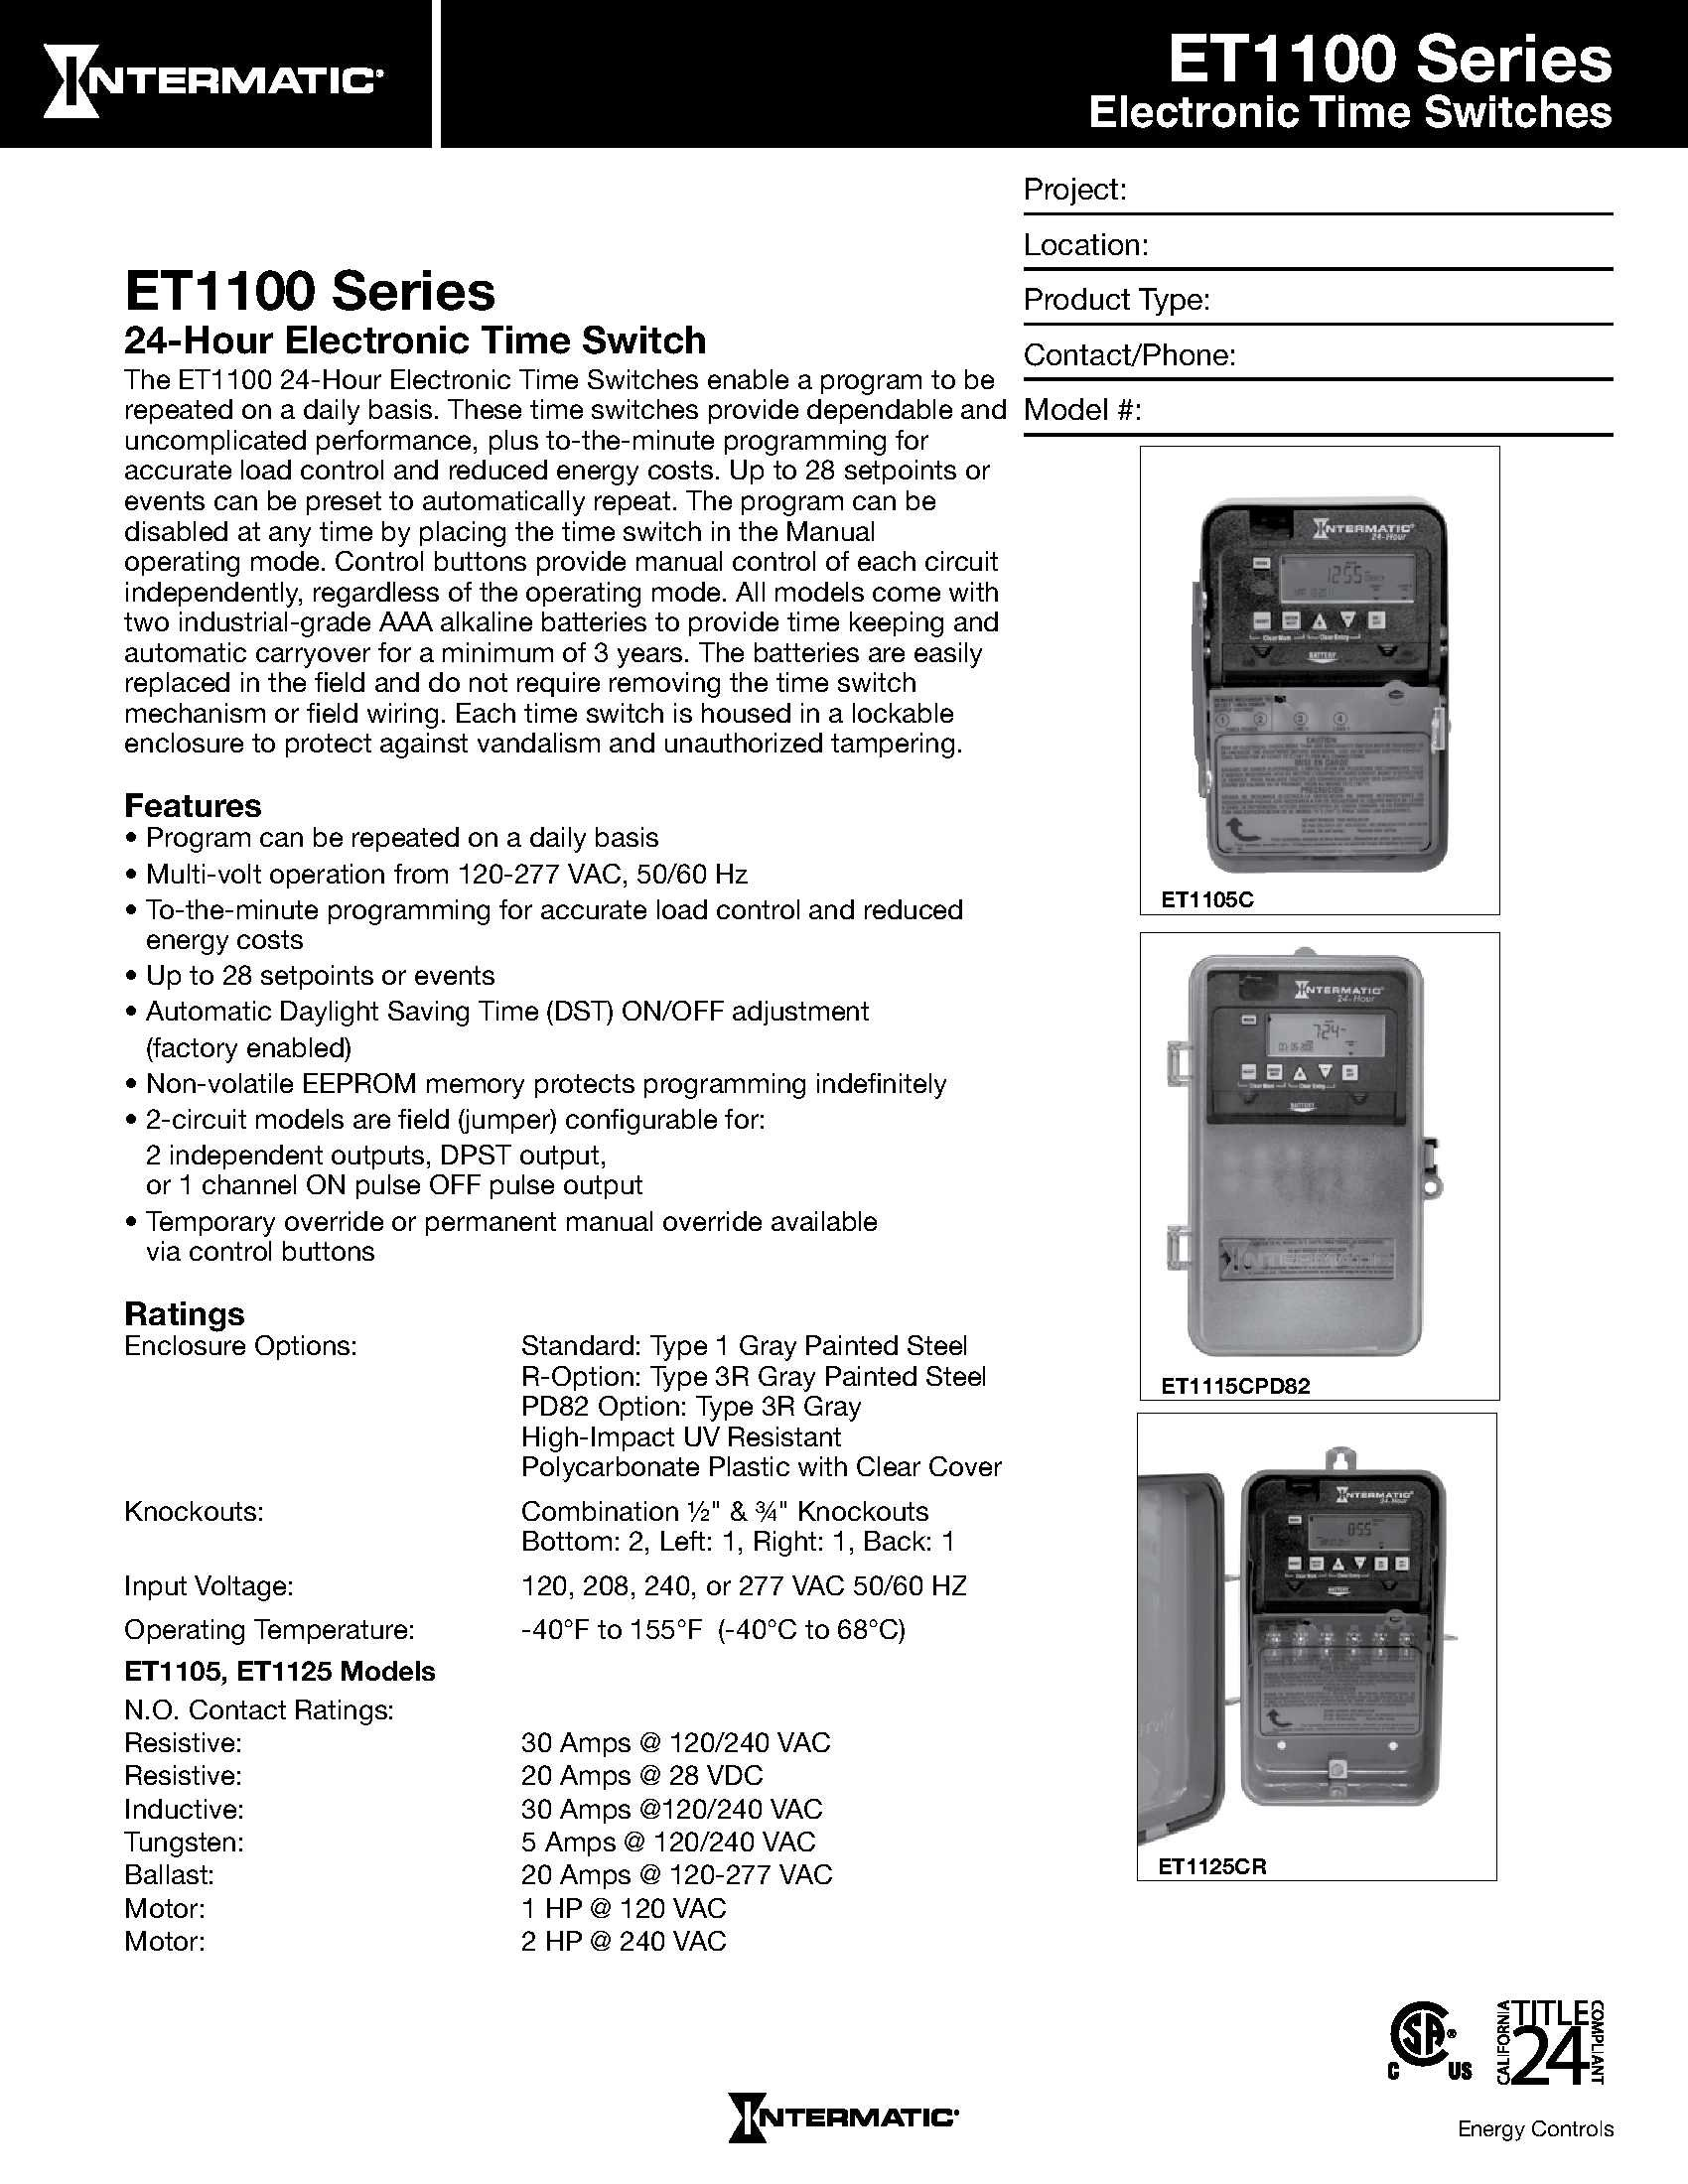 Intermatic ET1125C 24-Hour 30-Amp Electronic Time Switch, 120-277 VAC, NEMA 1 by Intermatic (Image #2)